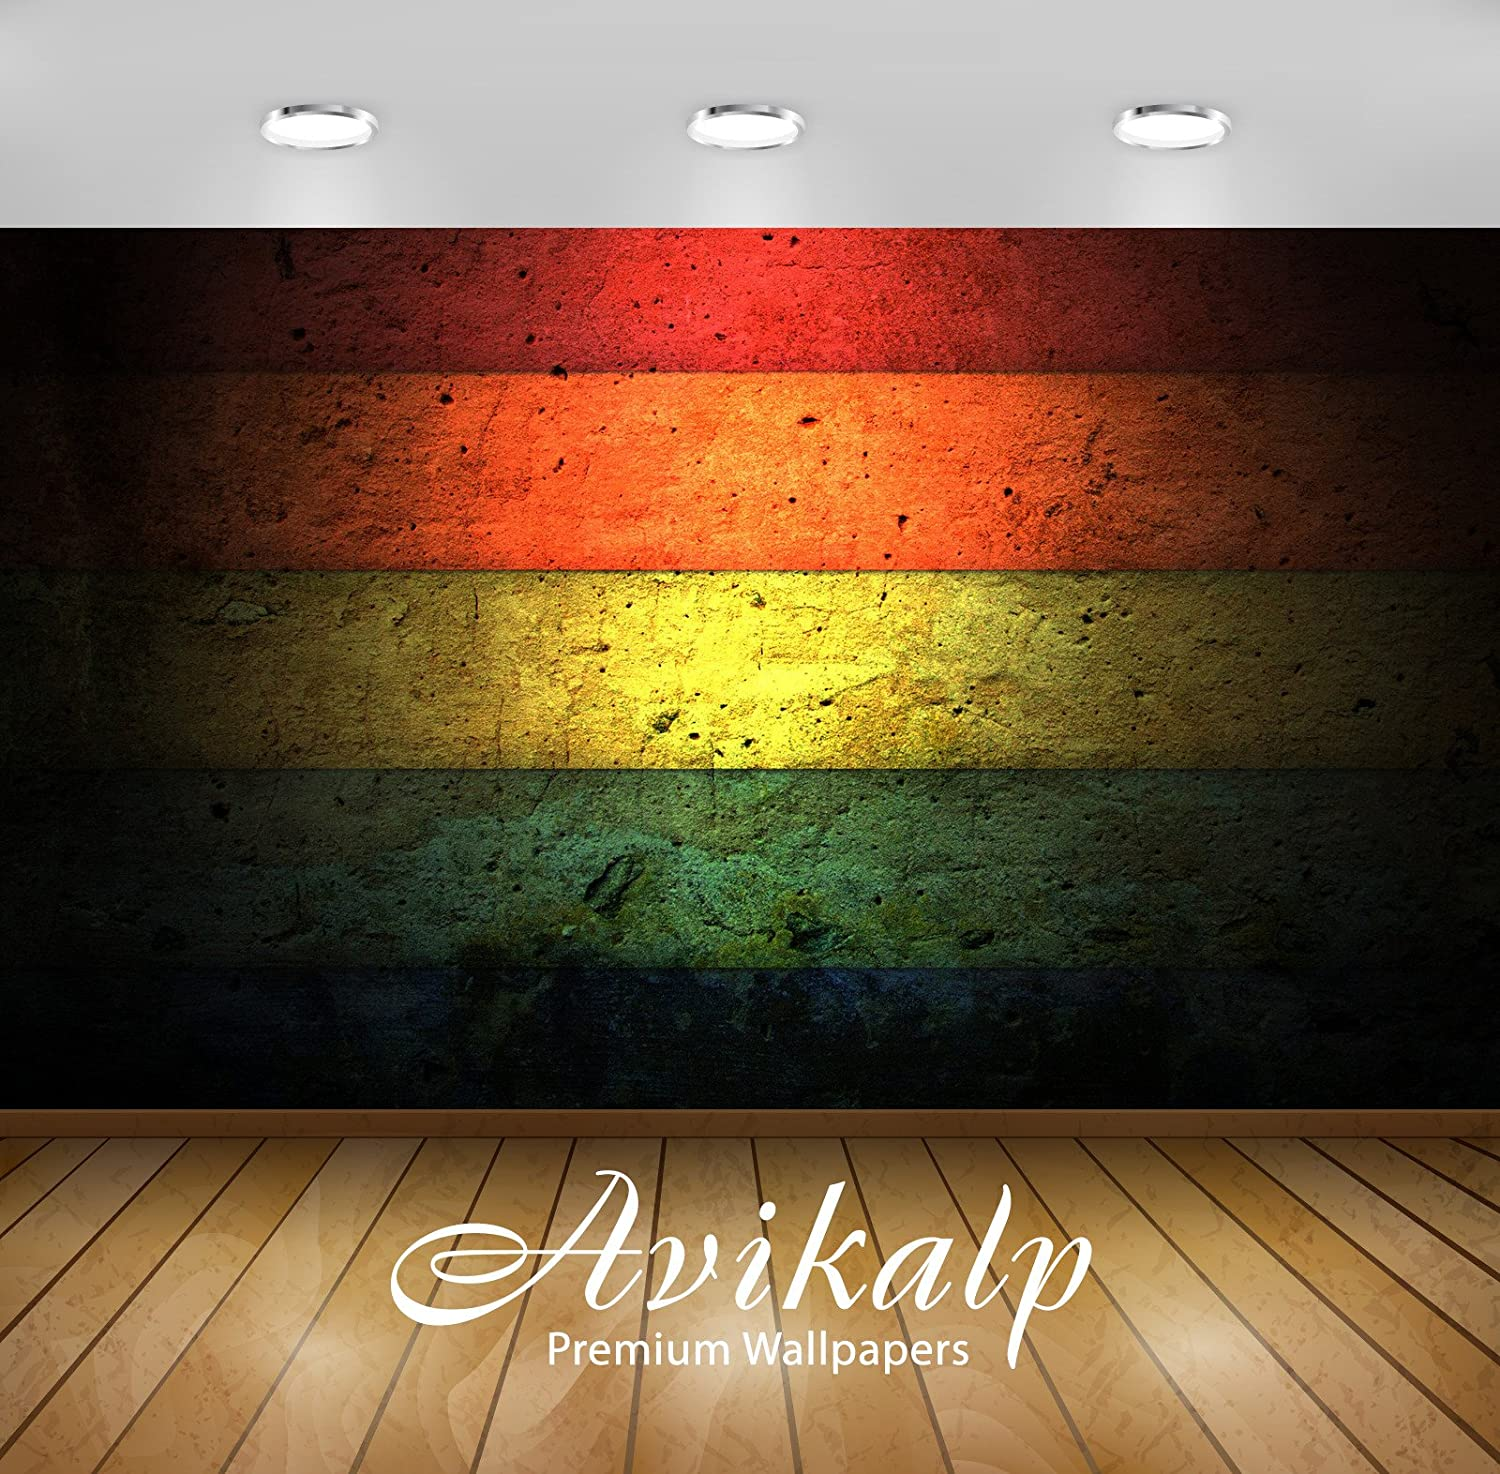 Buy Avikalp Colorful Stripes On The Wall Full Hd Wallpapers Wall Stickers 3 X 2 Ft Awi4199 Online At Low Prices In India Amazon In